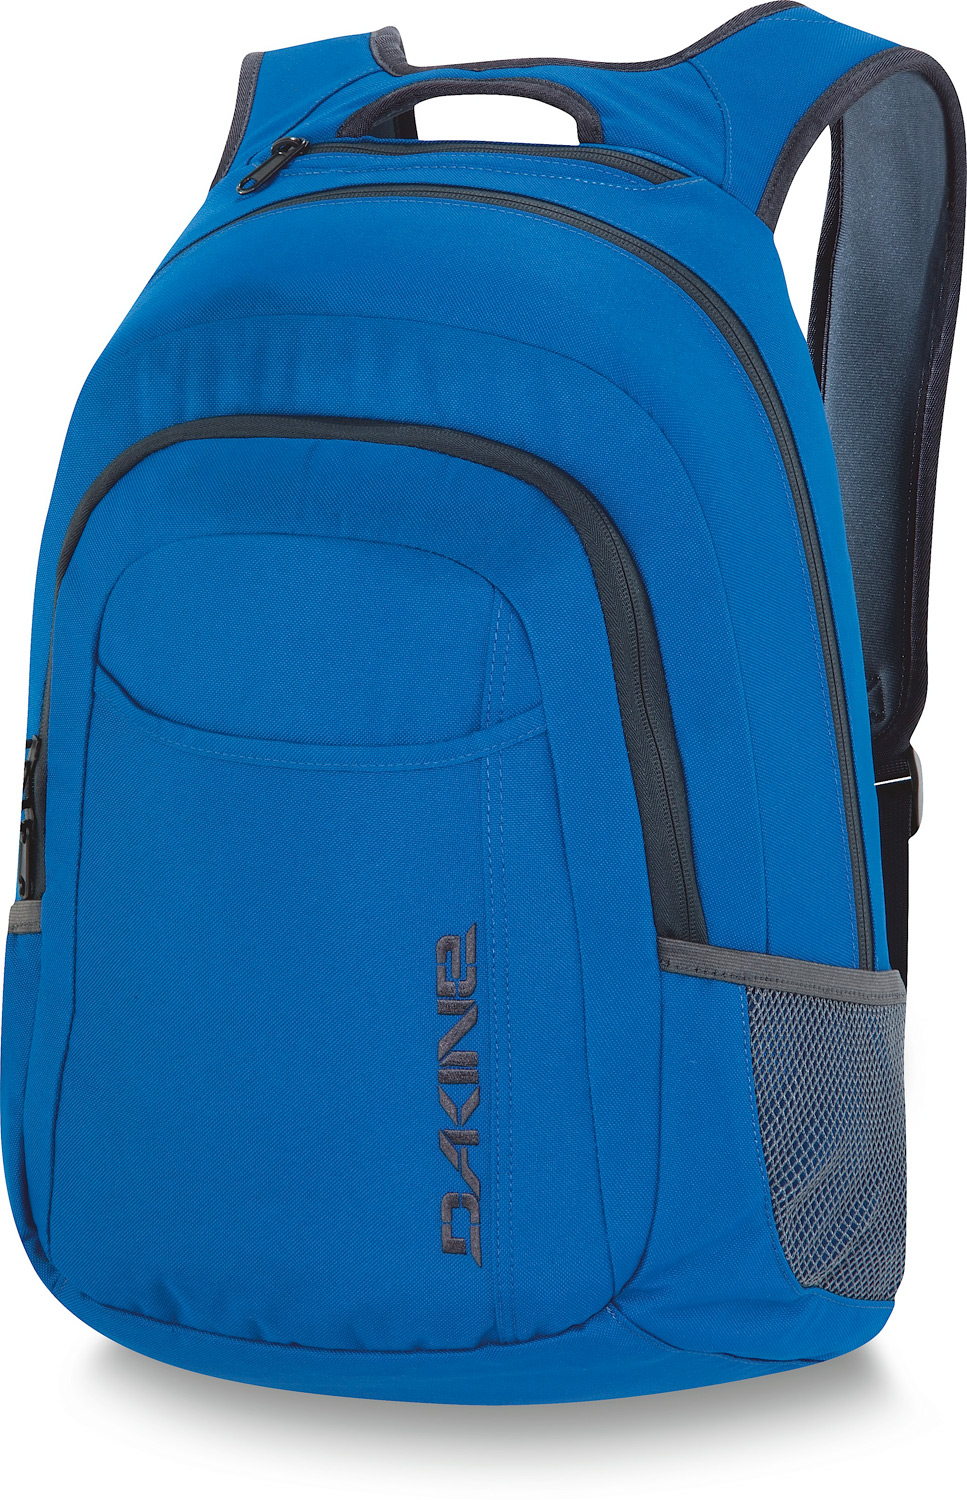 "Surf Key Features of the Dakine Factor Backpack: Padded sleeve fits most 14"" laptops Organizer pocket Mesh side pockets Fleece lined sunglass pocket 1200 cu. in. [ 20 L ] 17.5 x 12 x 6.5"" [ 44 x 30 x 16cm ] Planet friendly 100% PVC free - $29.95"